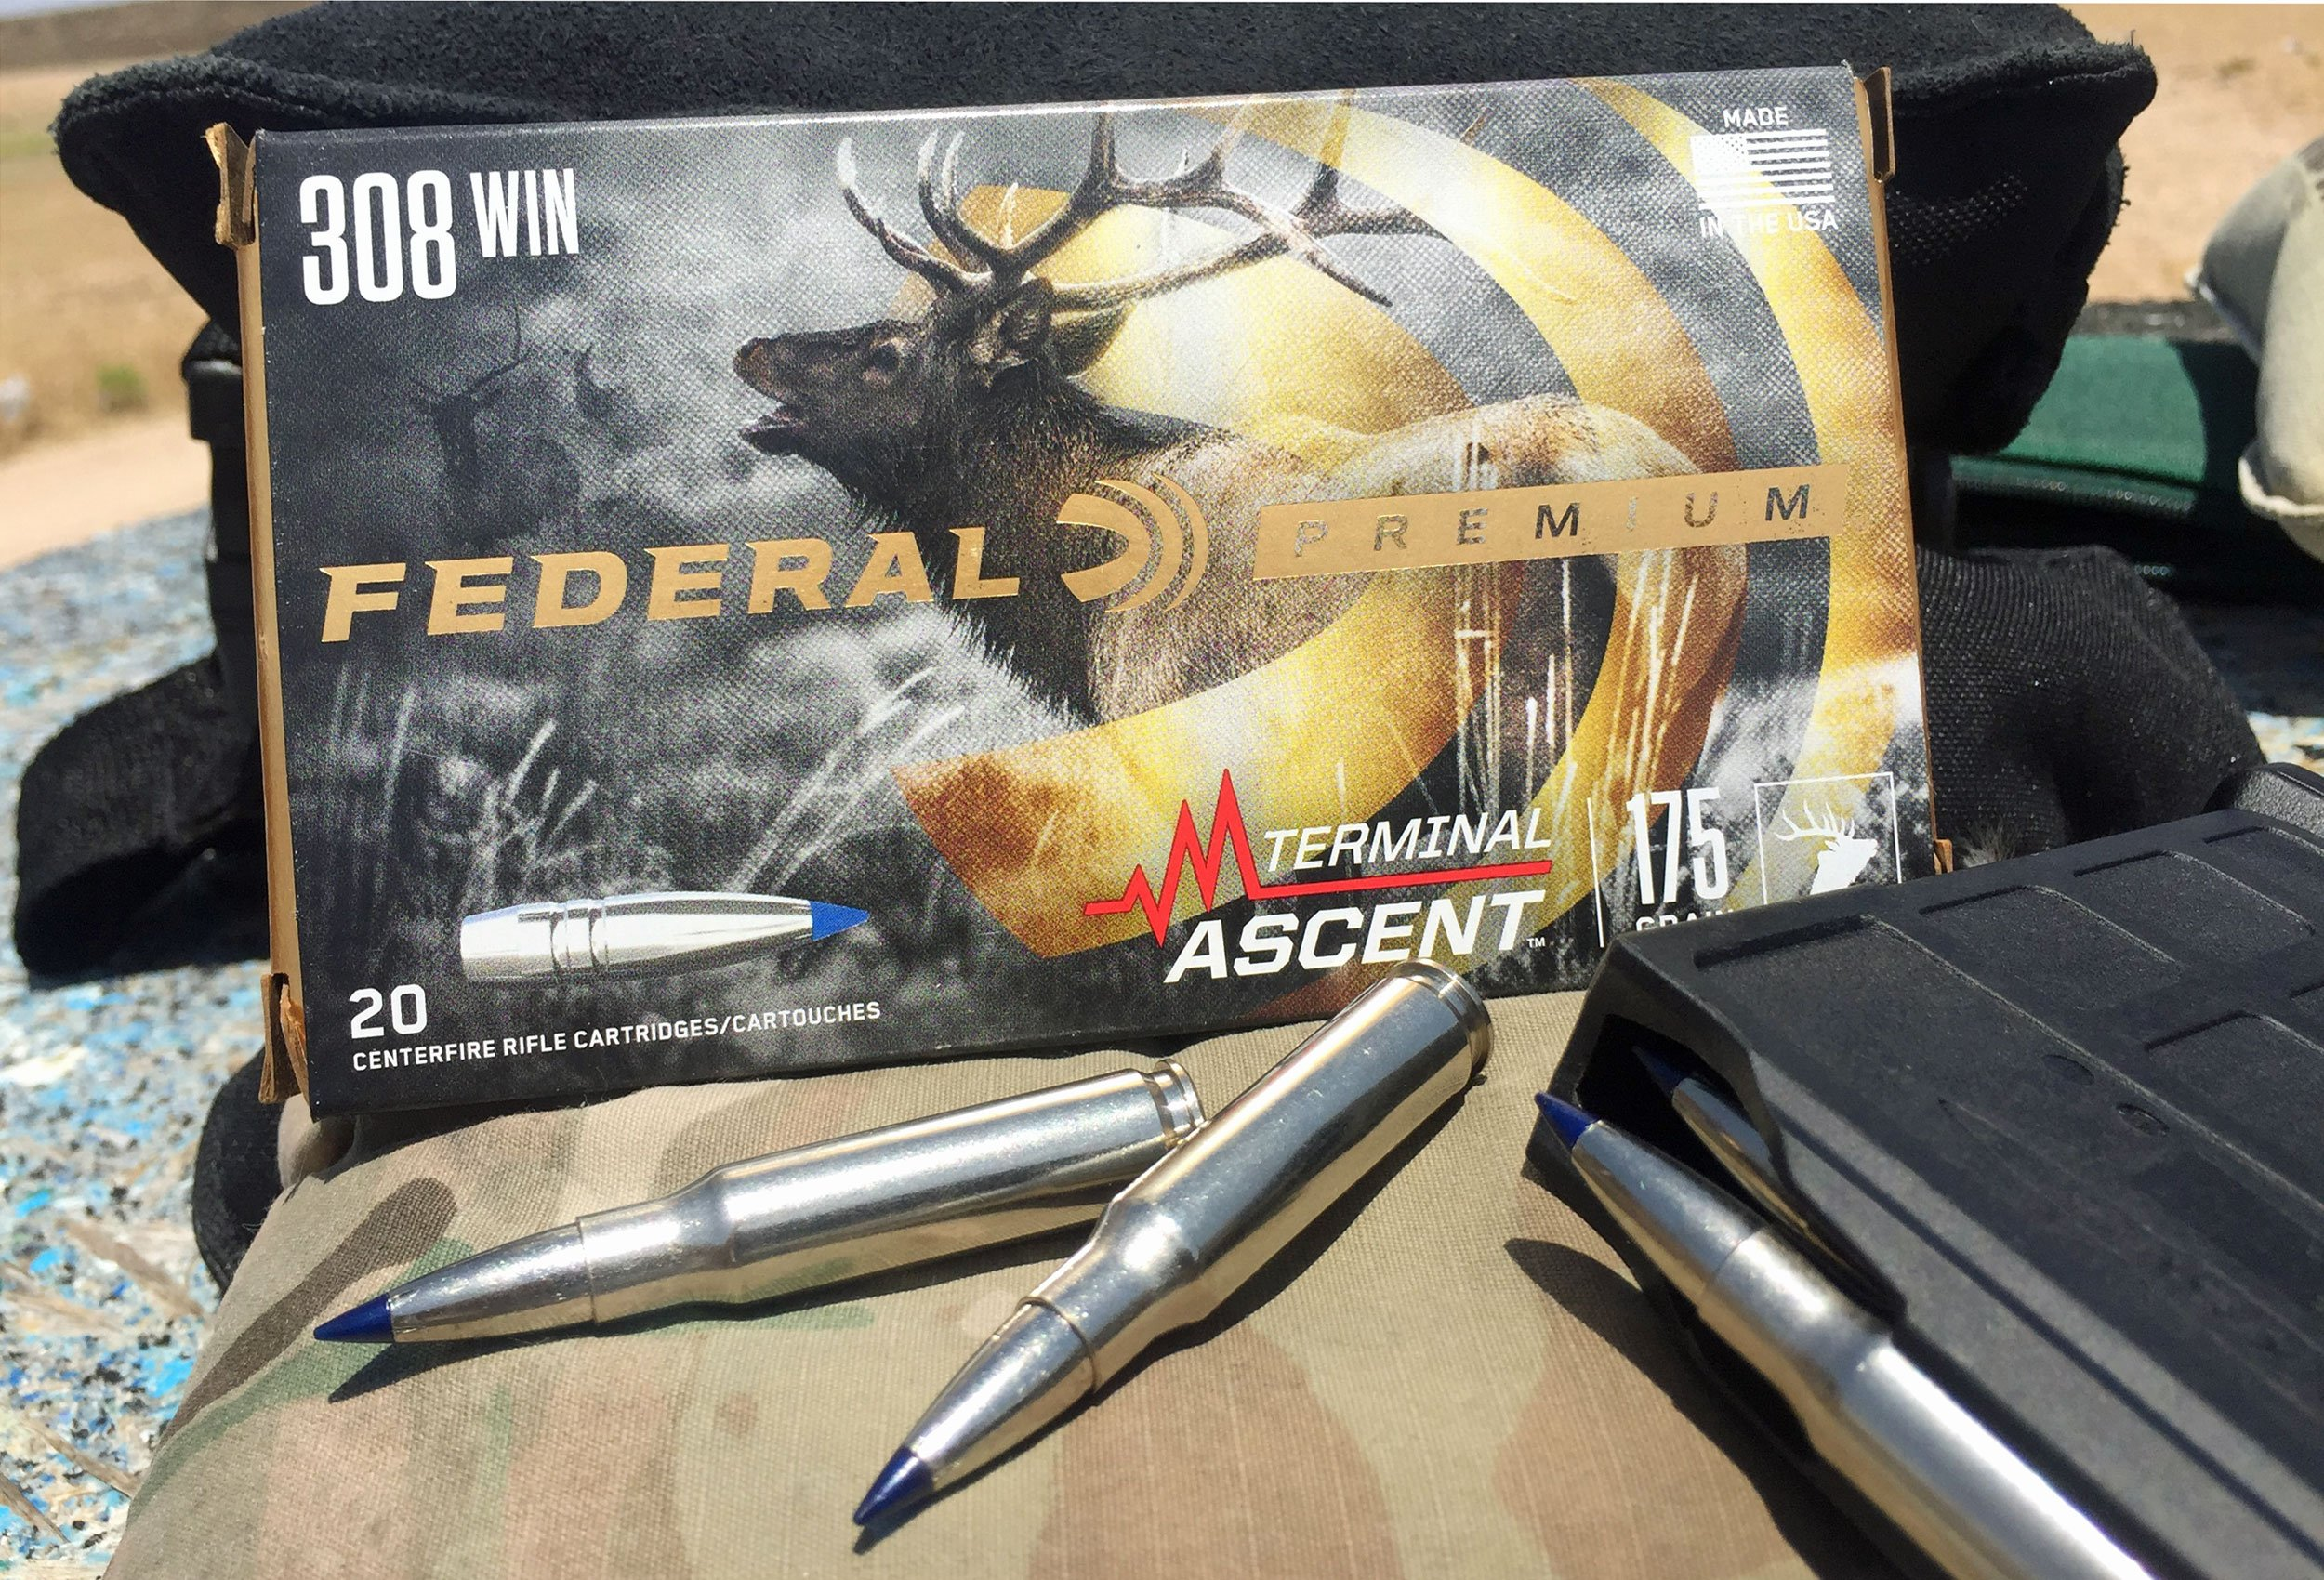 Federal Premium Terminal Ascent Ammunition: A Range-to-Field Review